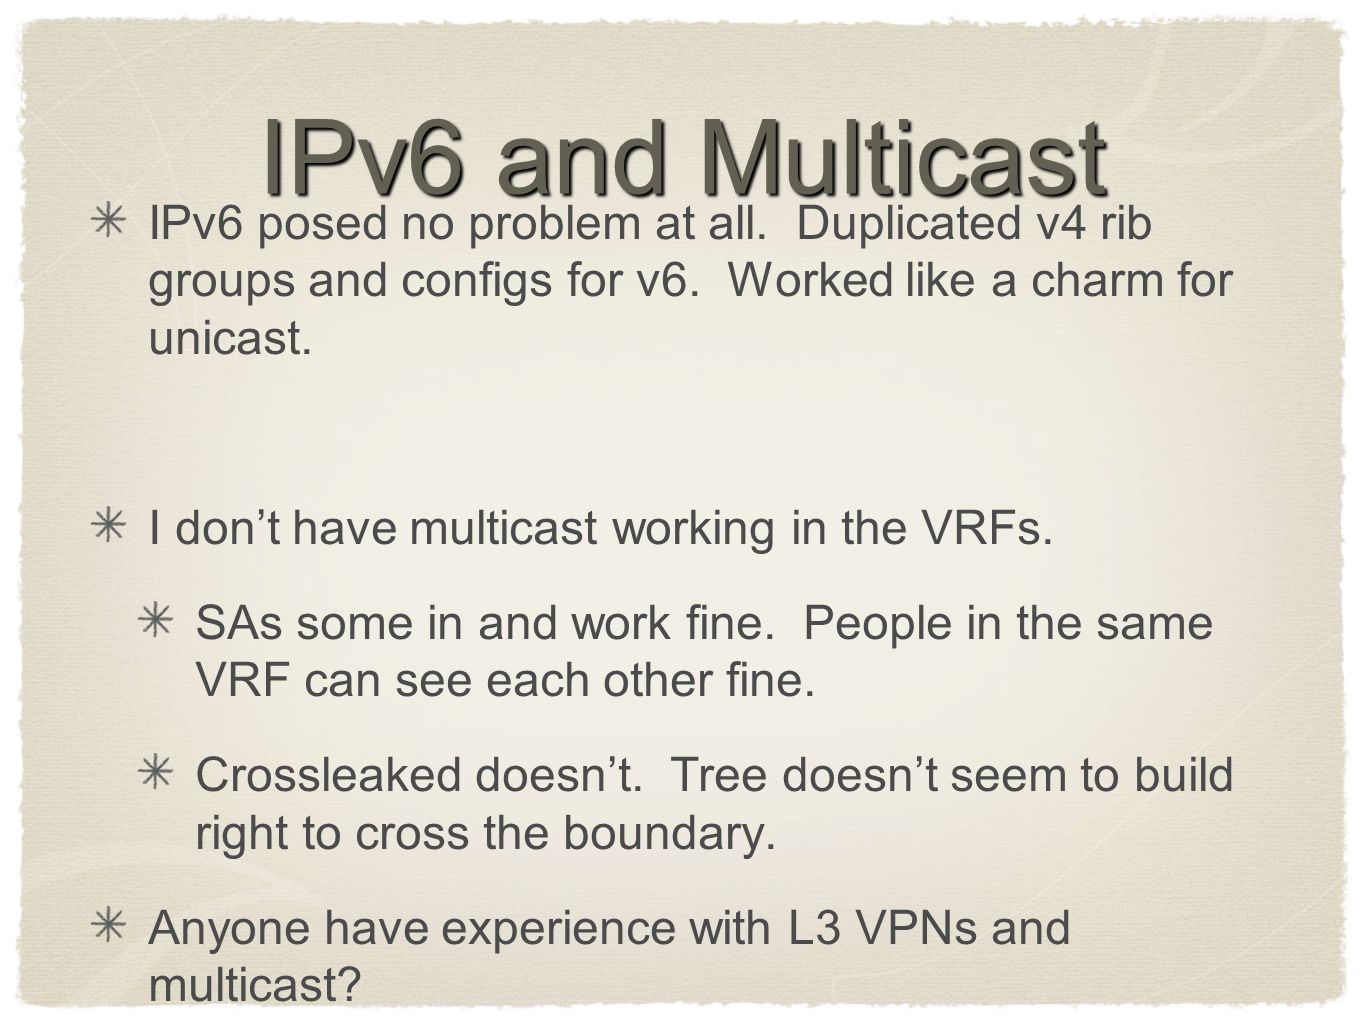 IPv6 and Multicast IPv6 posed no problem at all. Duplicated v4 rib groups and configs for v6. Worked like a charm for unicast. I don't have multicast